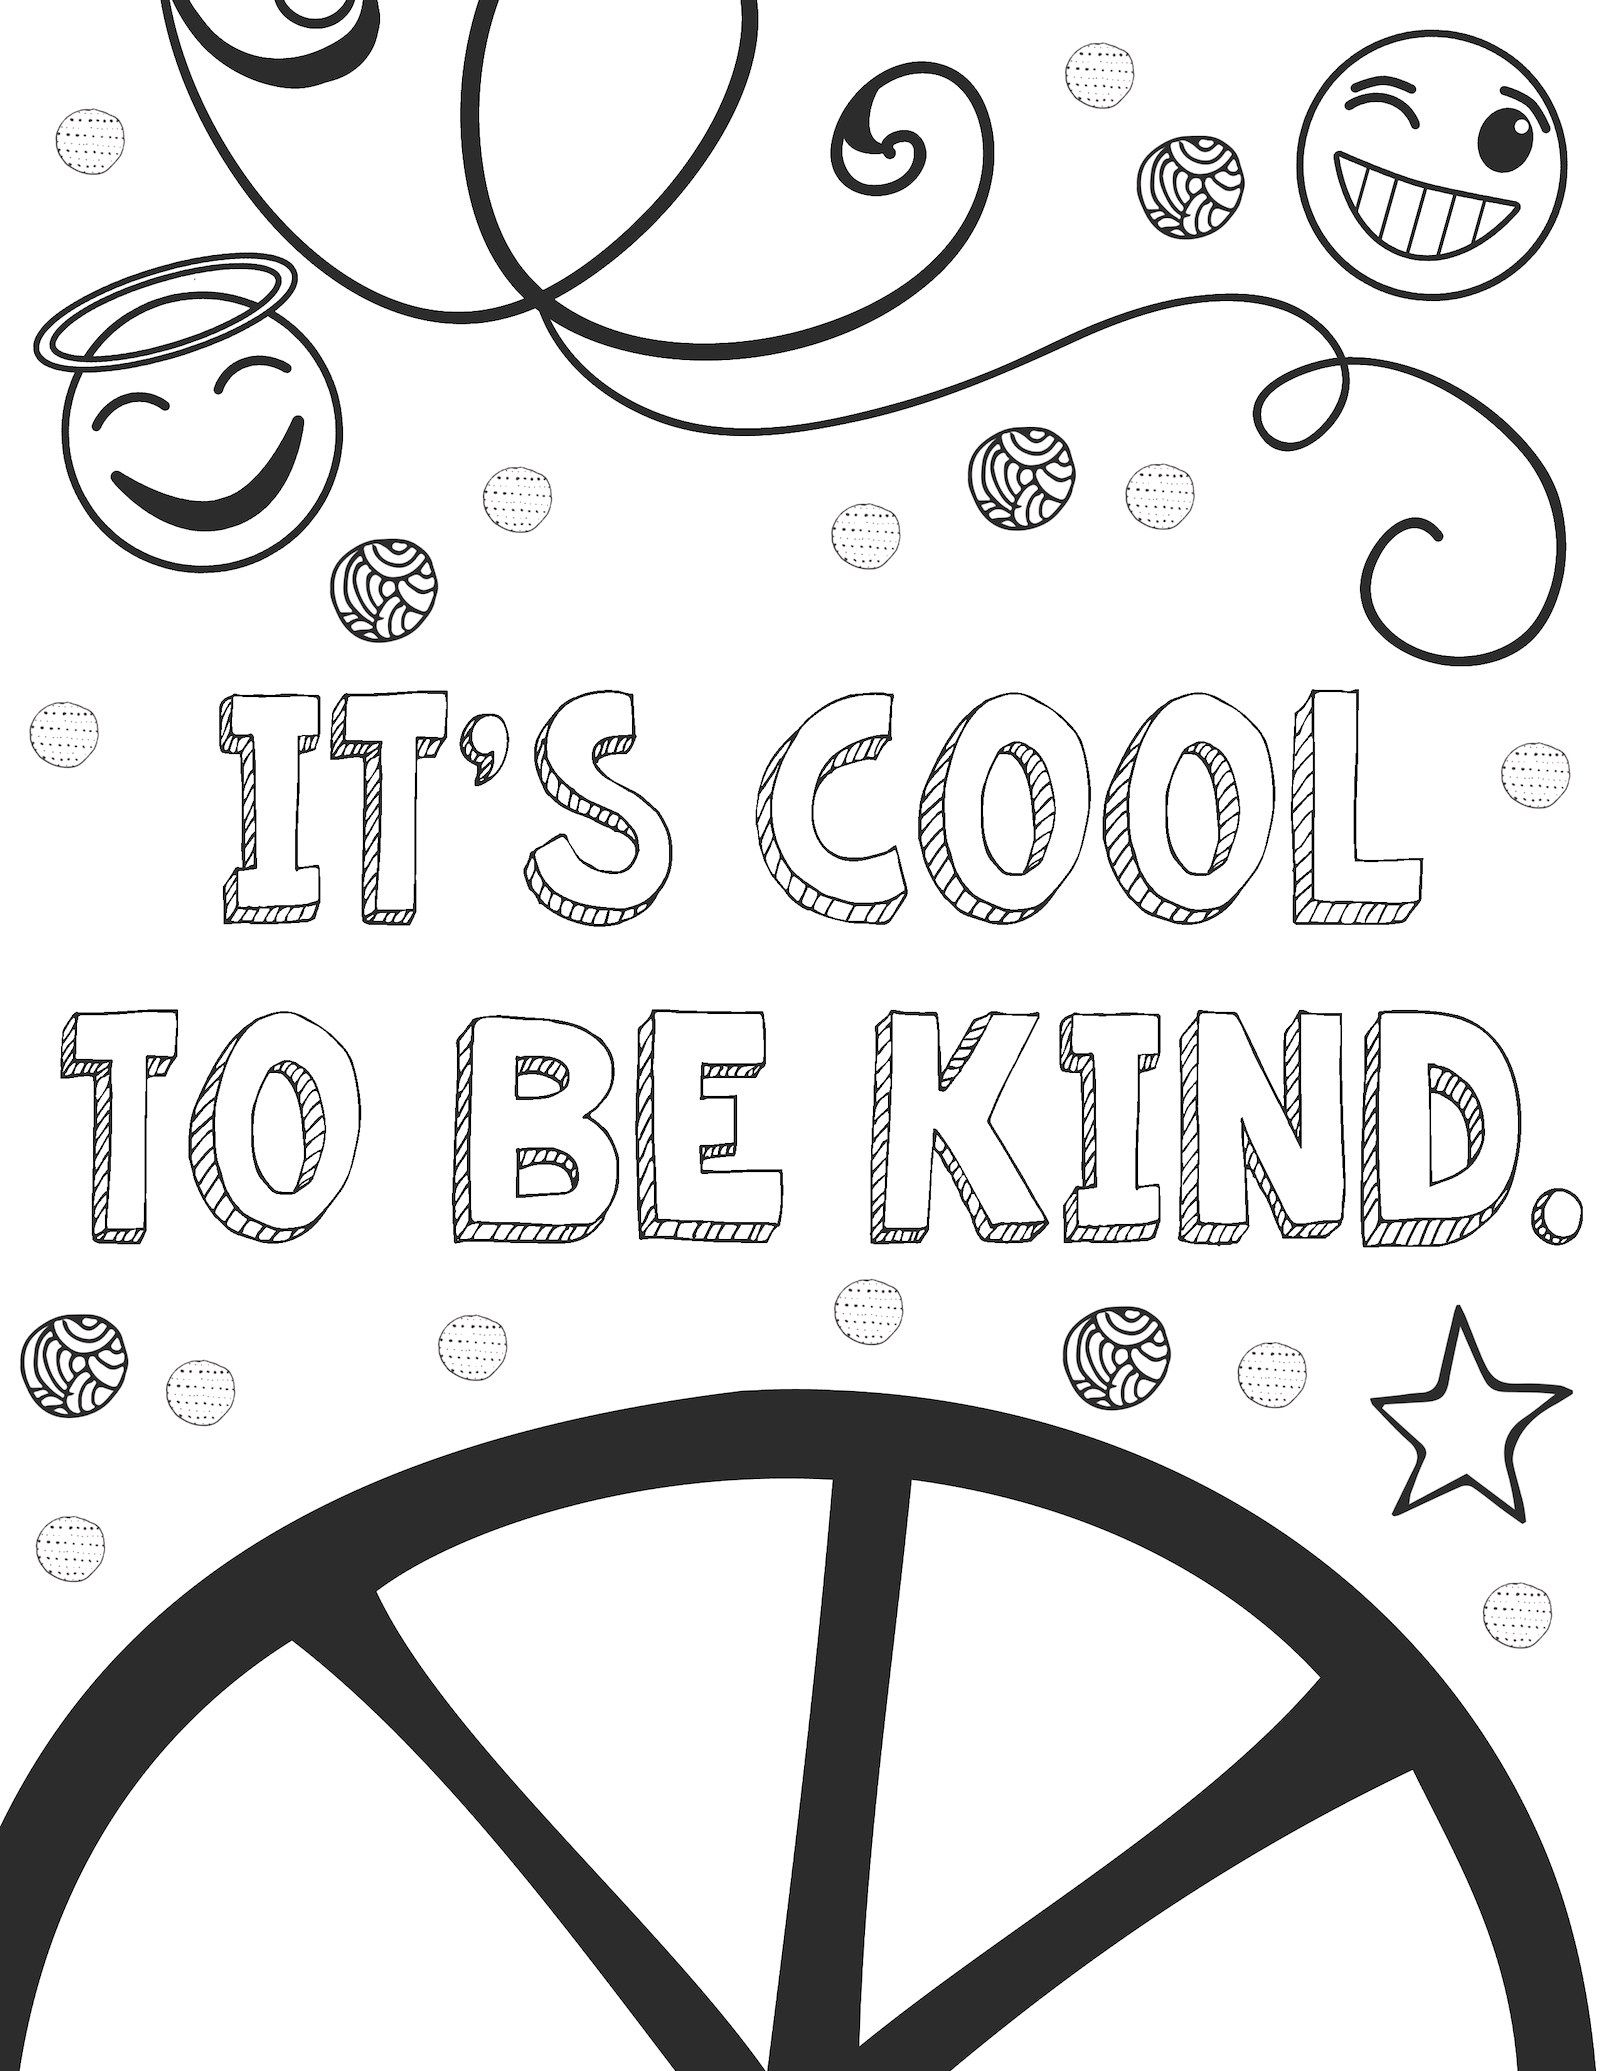 Kindness Coloring Pages Free Sample Page Free Printable Coloring Pages Coloring Pages Cool Coloring Pages